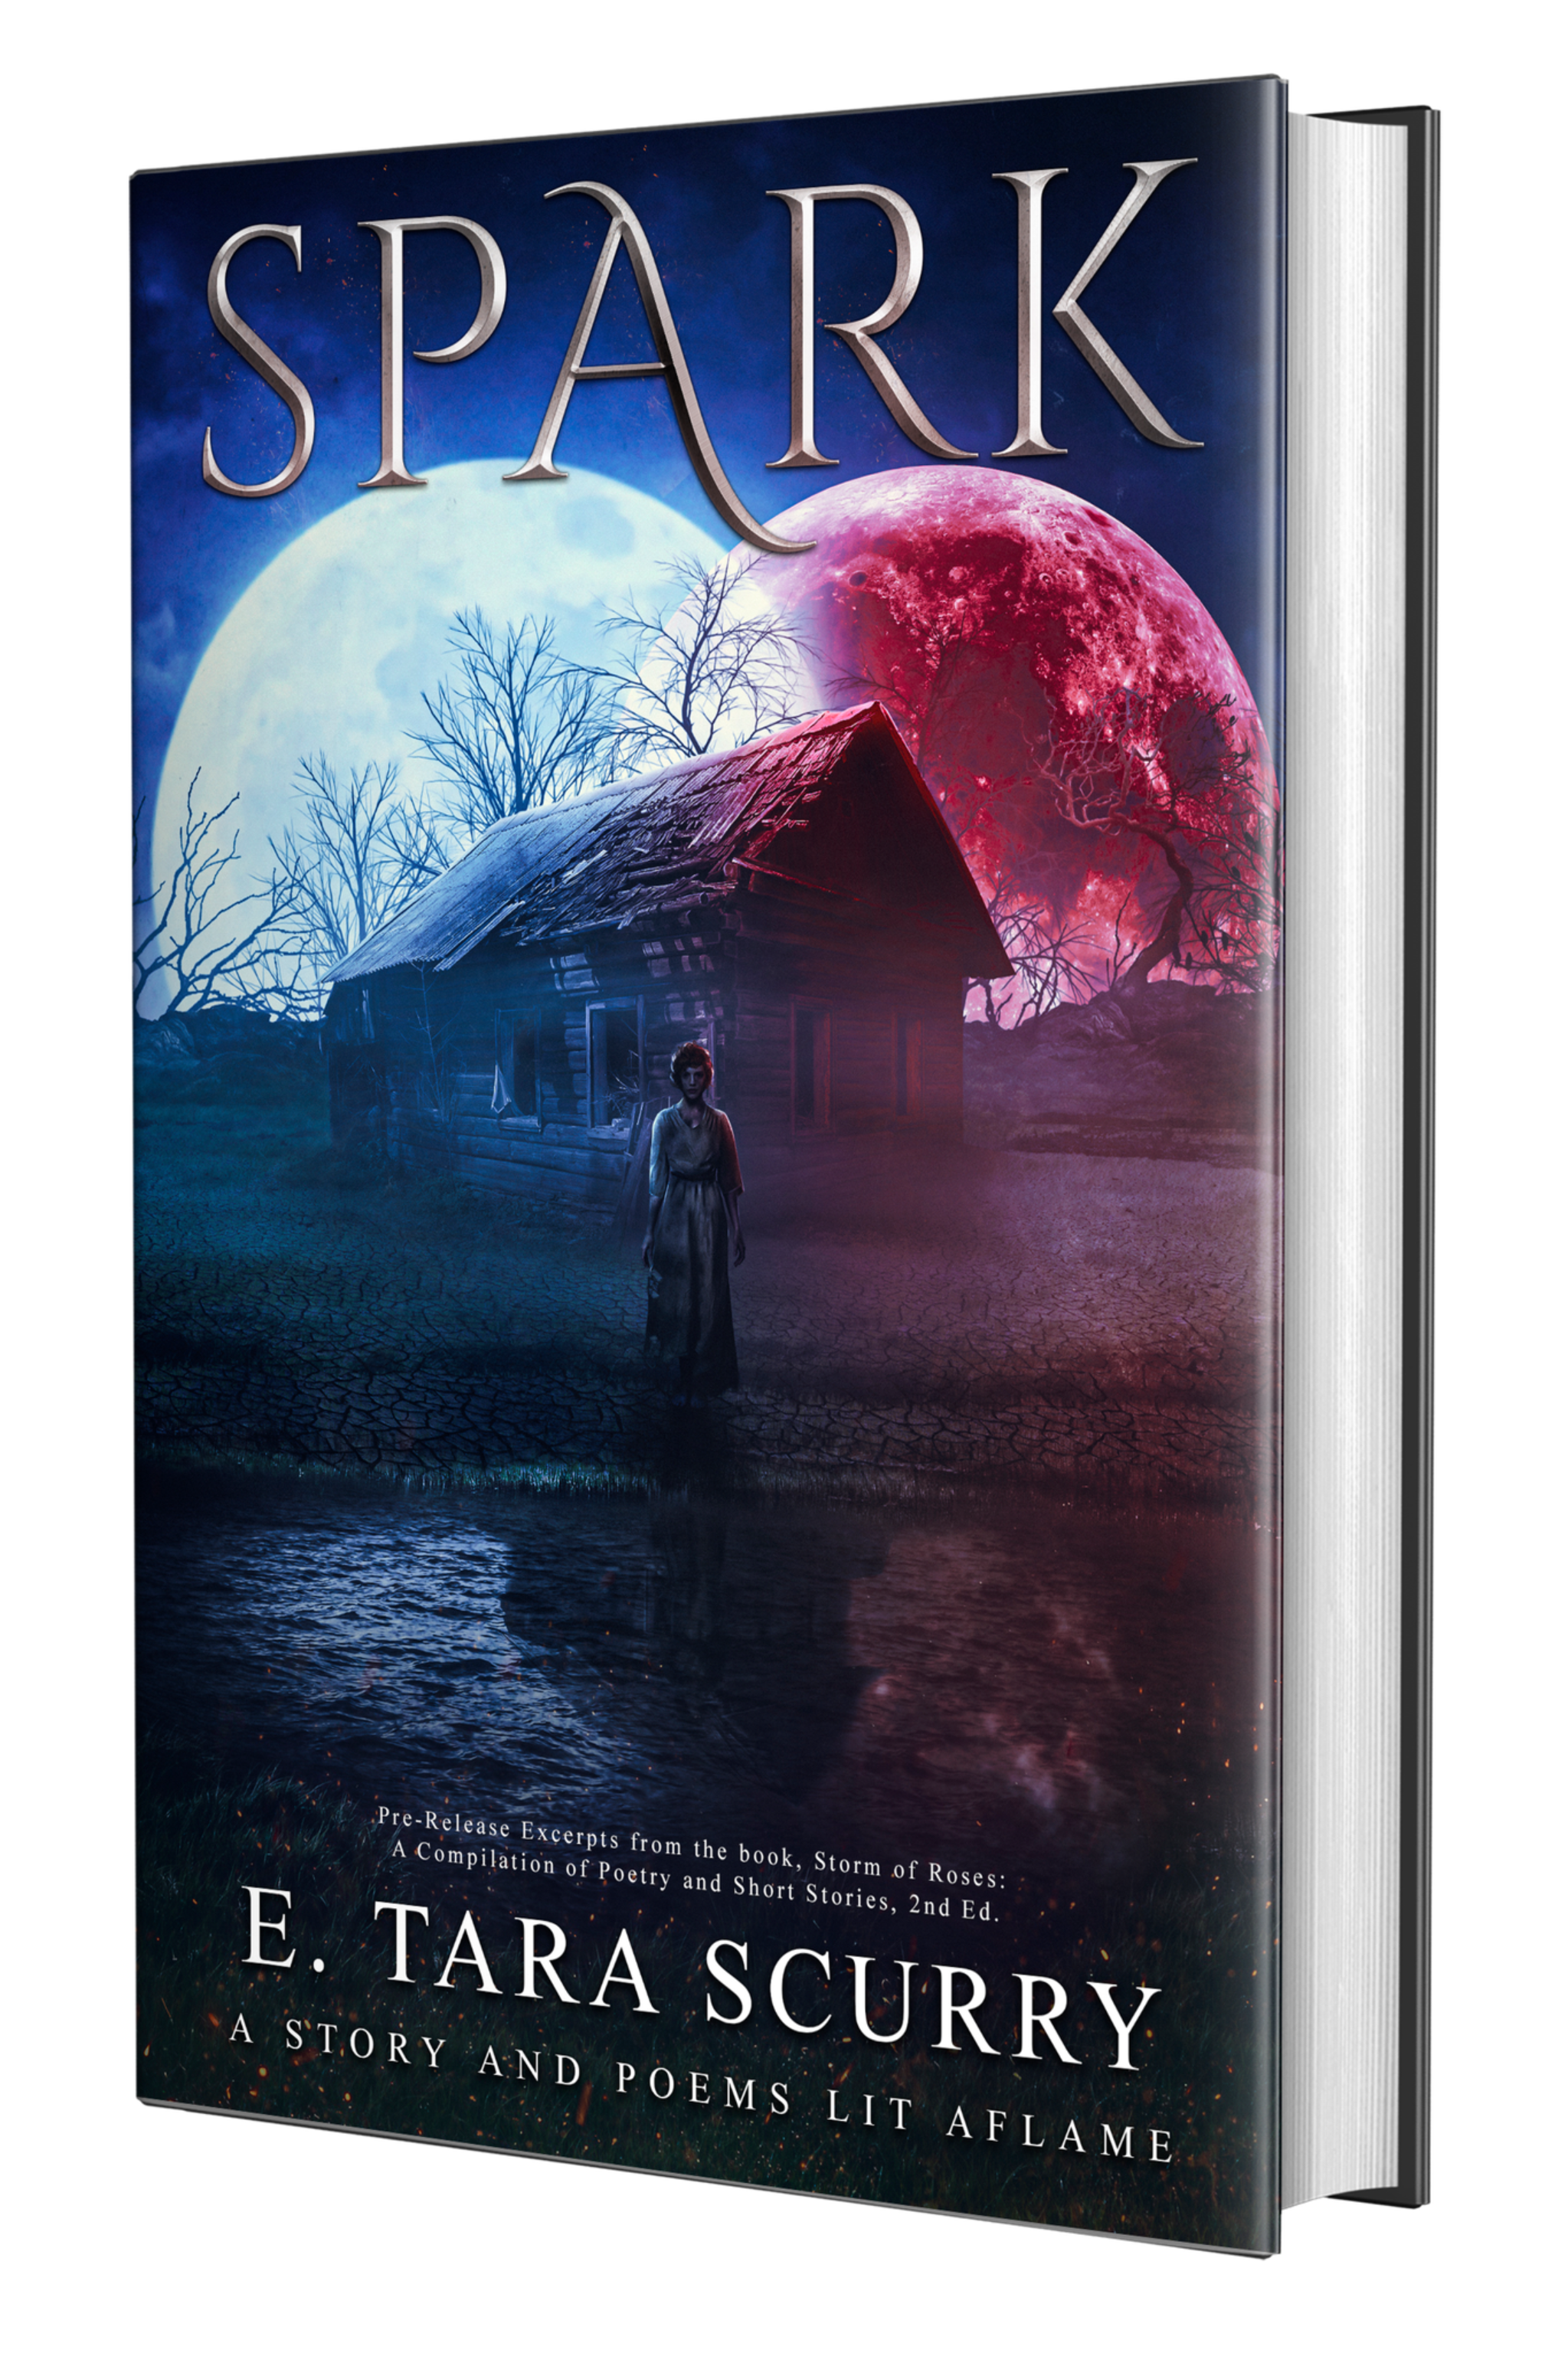 SPARK: A Story and Poems Lit Aflame  (Signed Paperback) PRE-ORDER